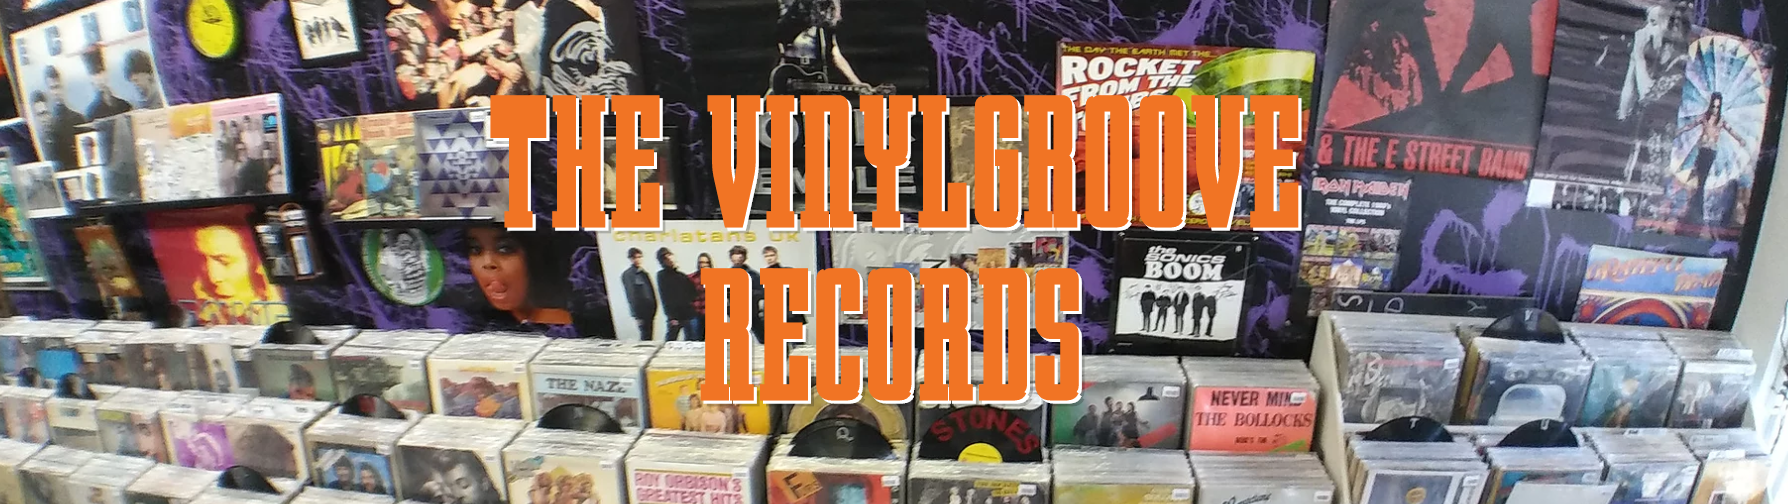 Bedford Is A Groovy Town The Vinyl Groove Record Store